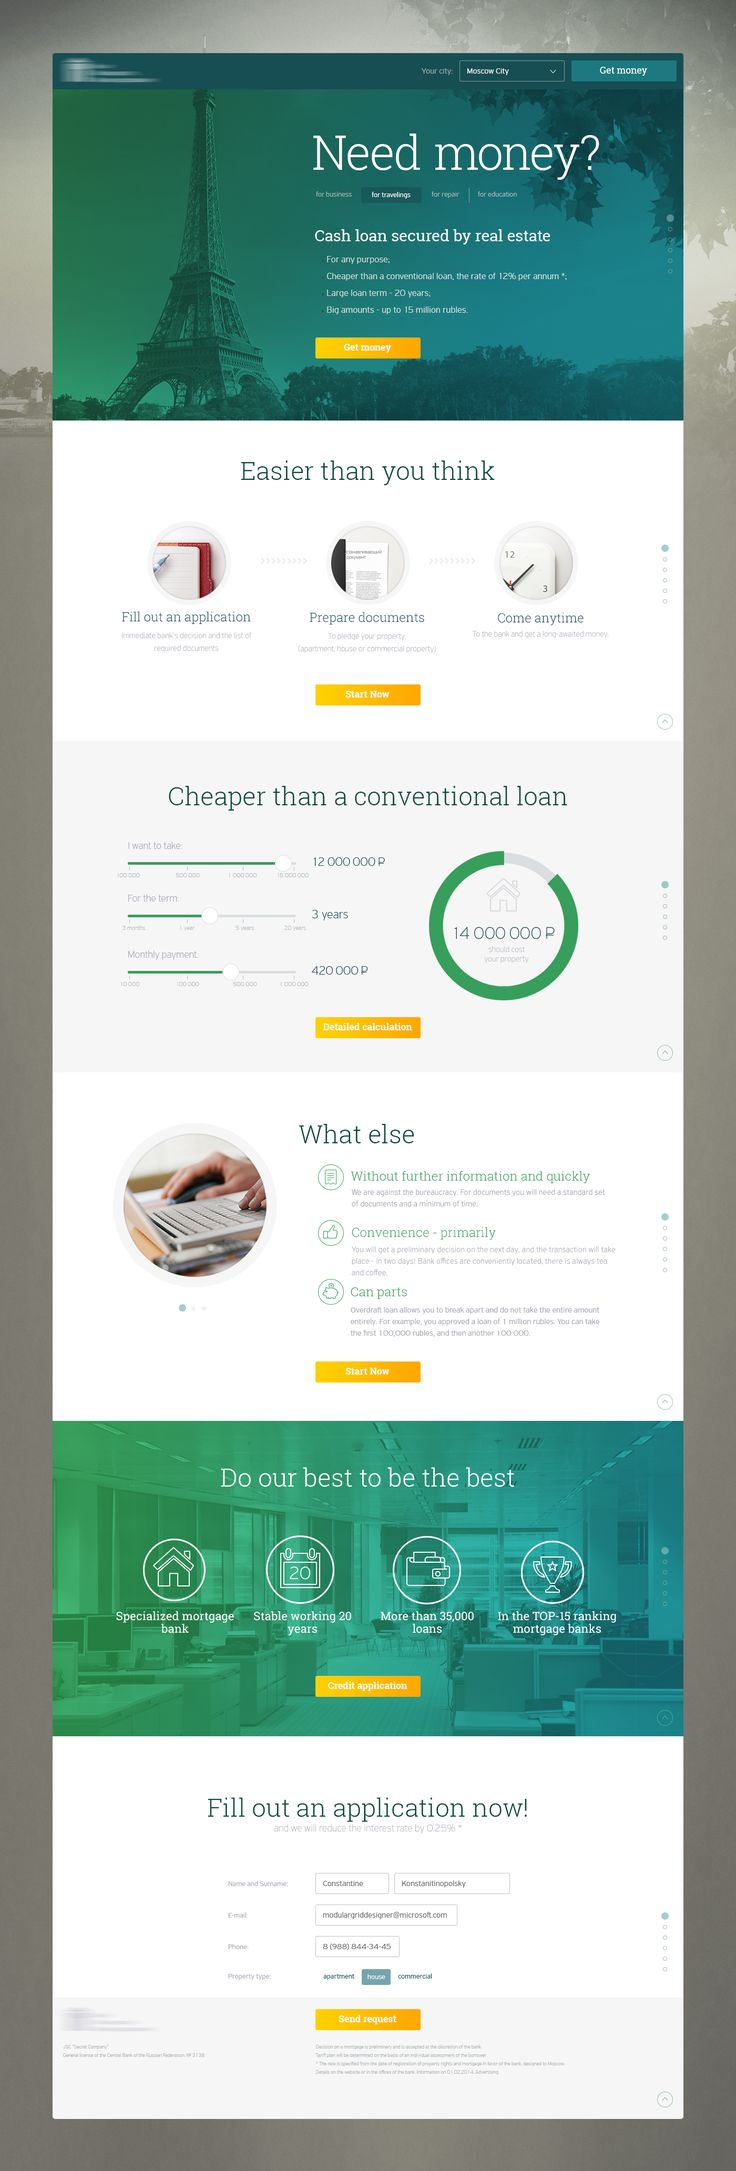 Fantastic example of a conversion driving page design.